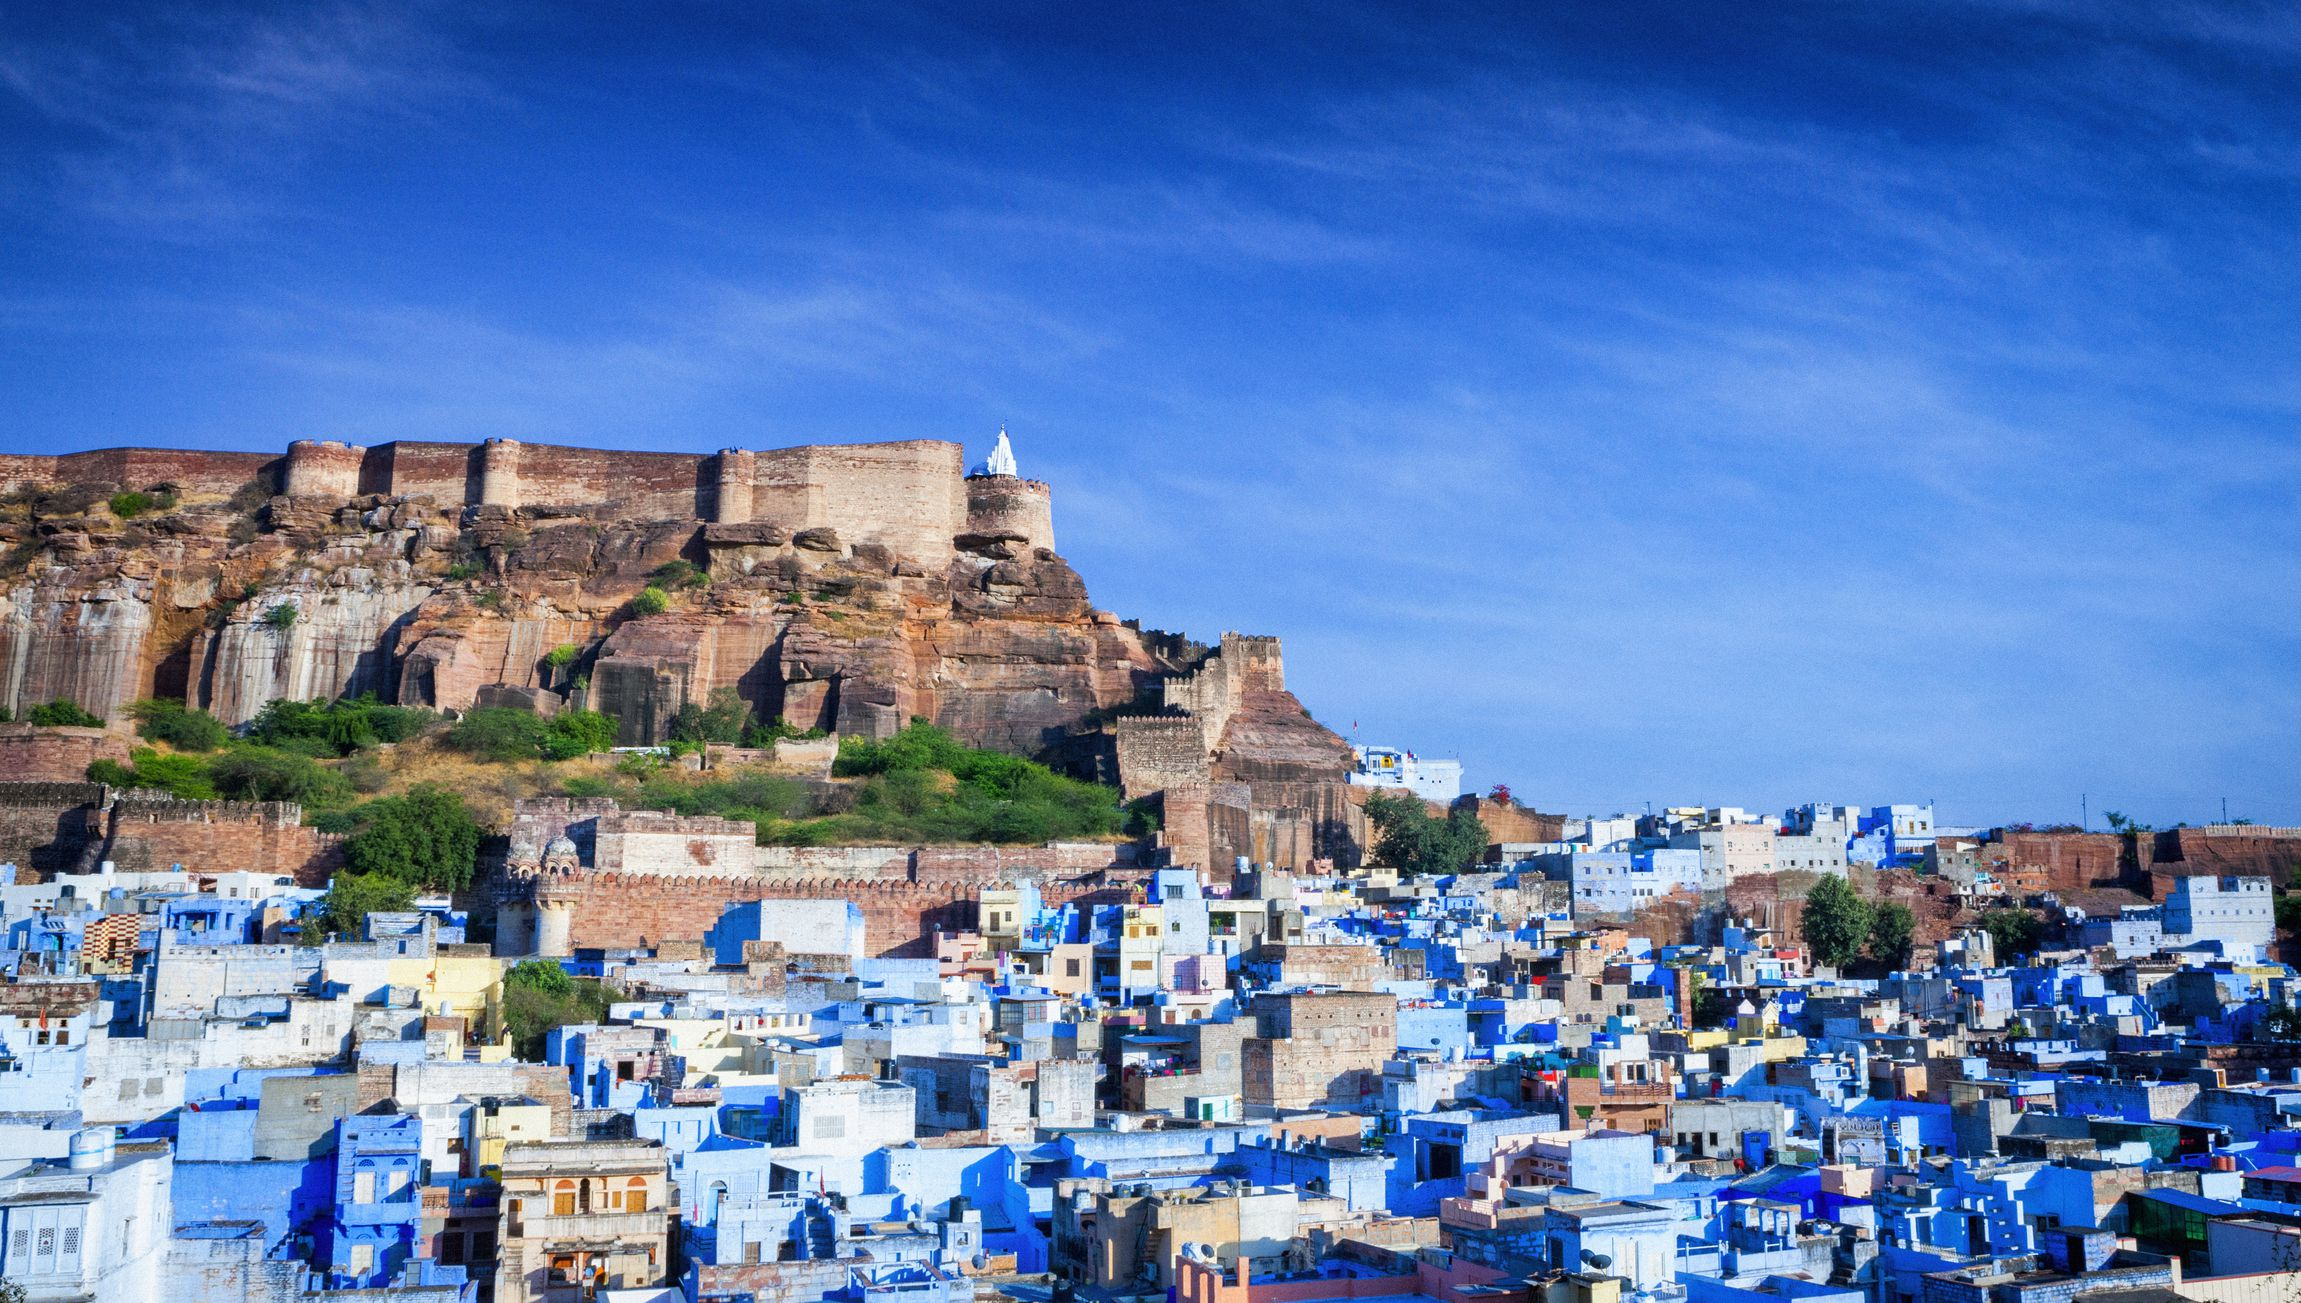 Top 10 attractions and places to visit in jodhpur for Top ten places to vacation